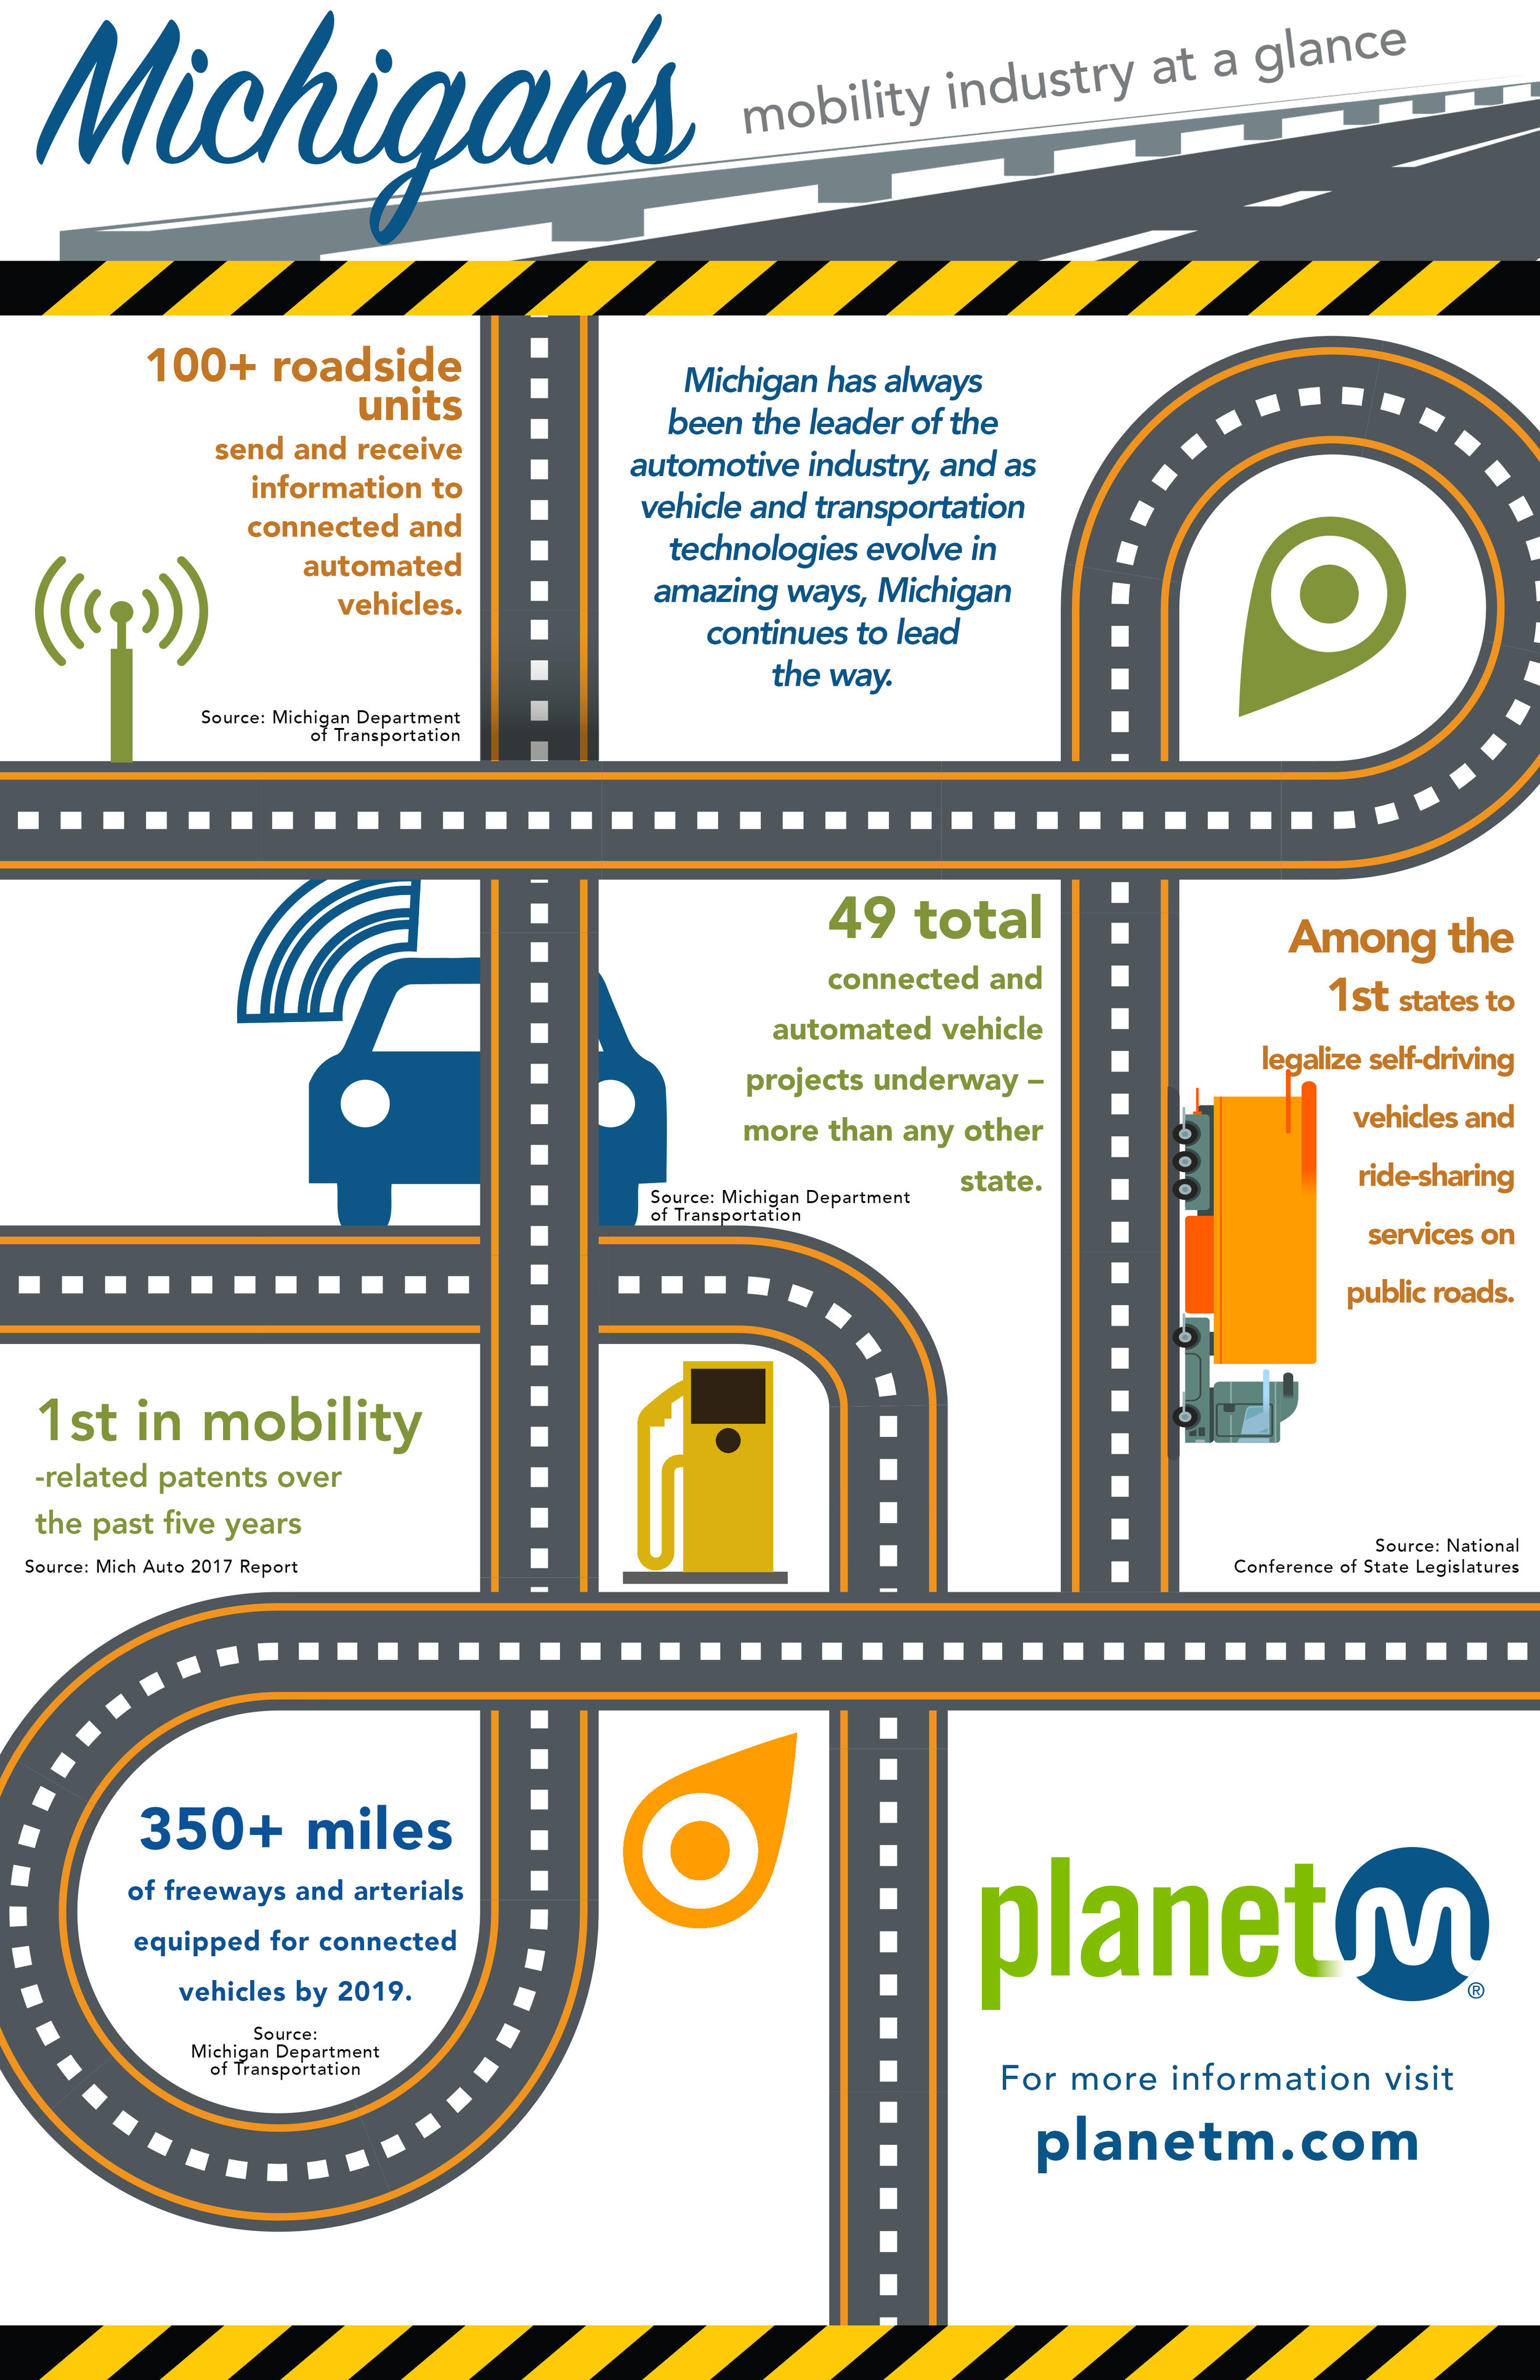 Mobility-infographic-2018-R2.jpg